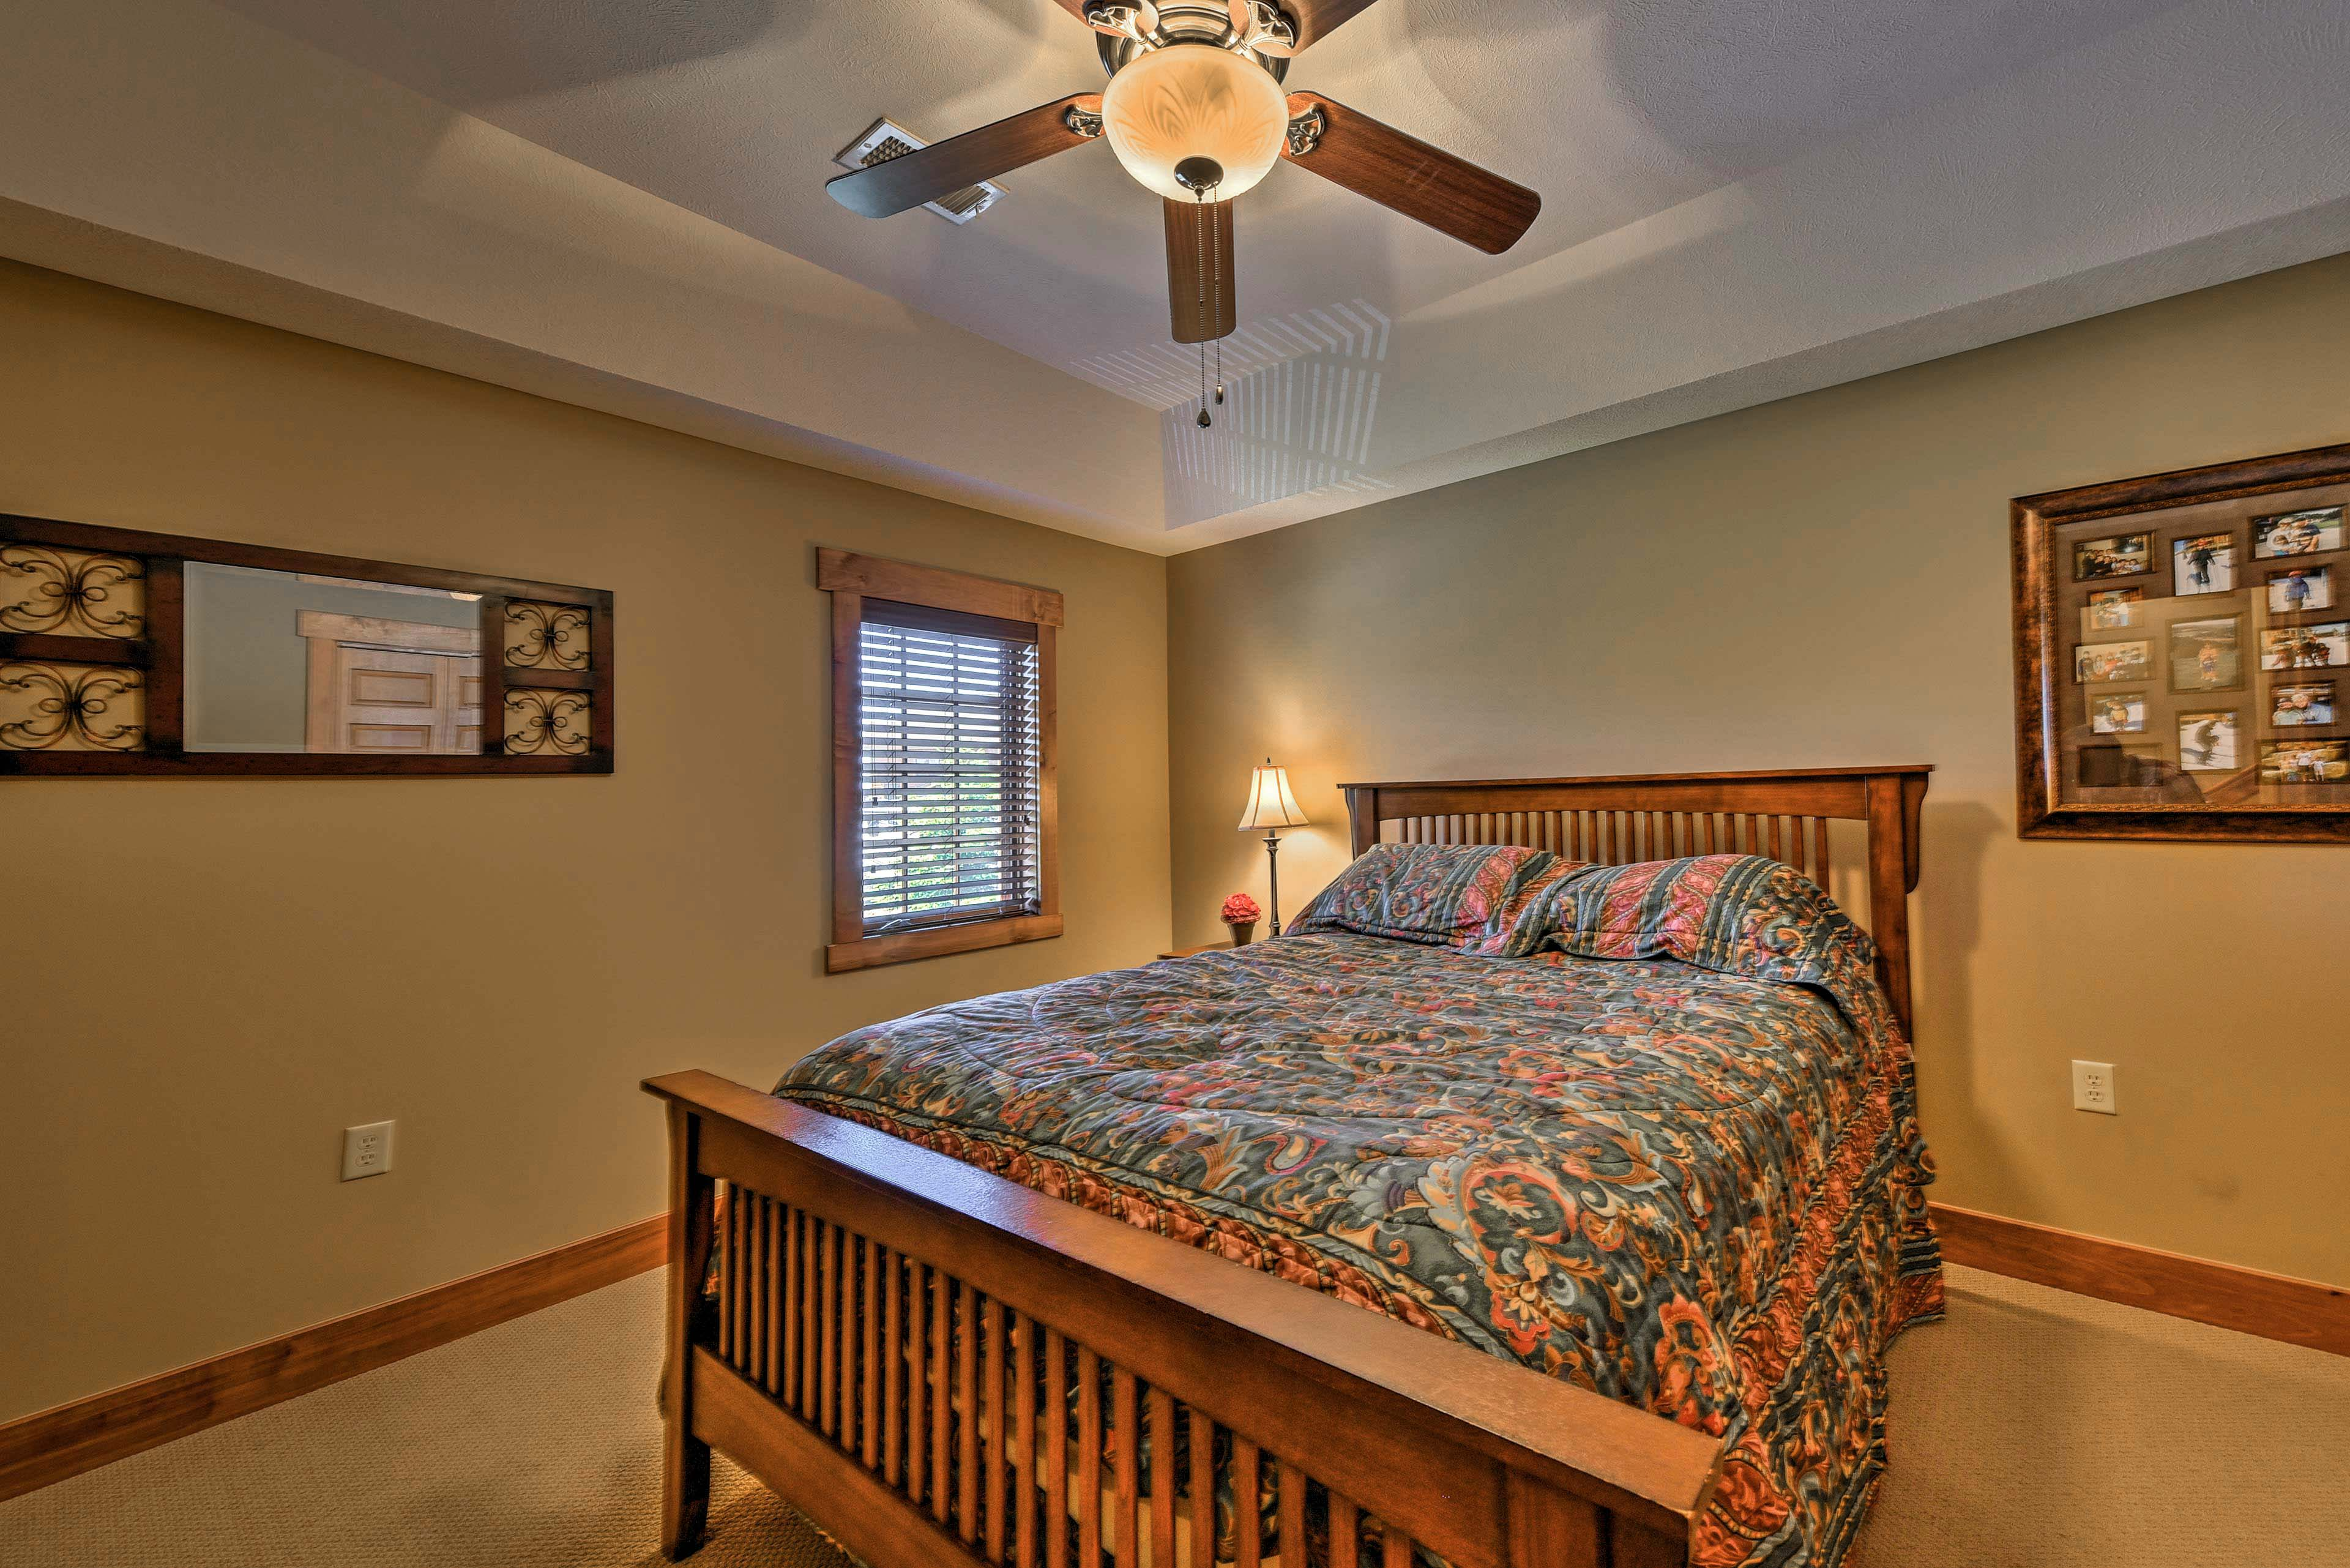 A restful slumber awaits you in this queen-sized bed.